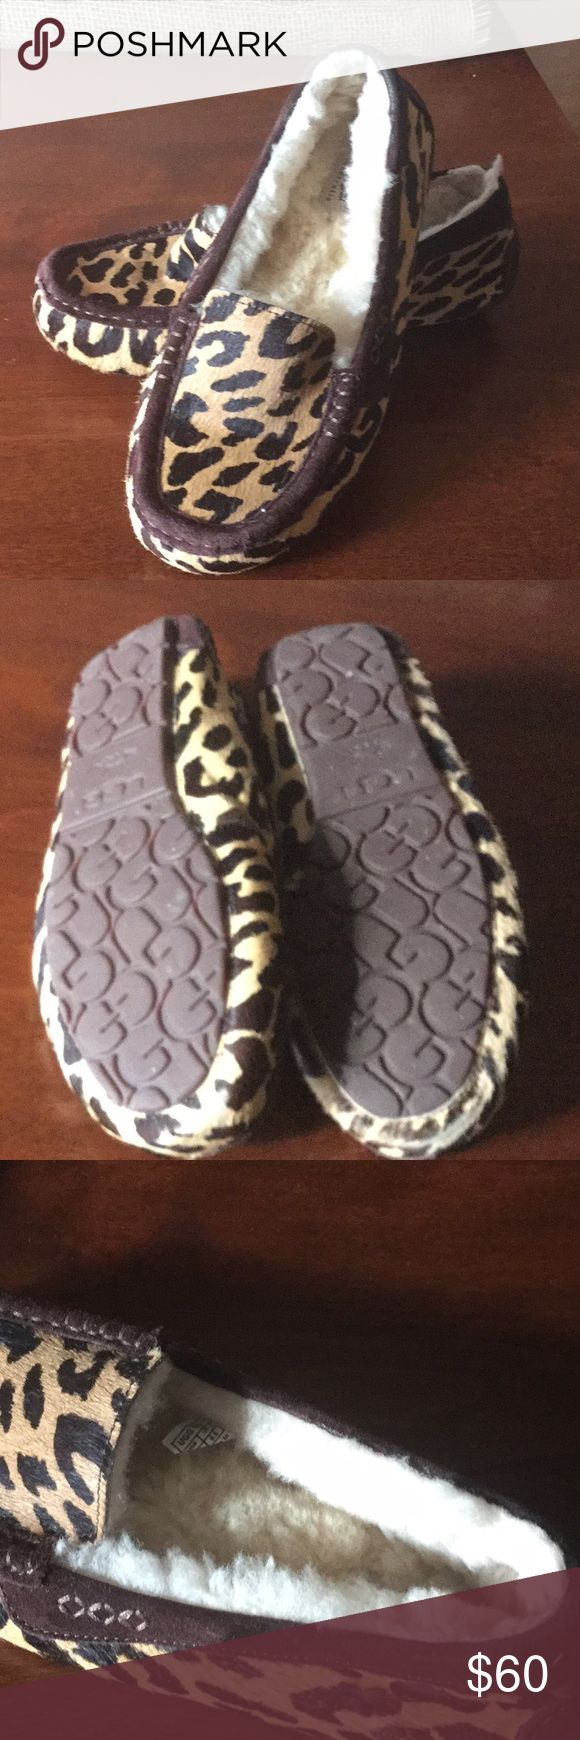 Ugg animal print slippers Ugg slippers.  Animal print with sheepskin lining. Perfect condition. Only worn a few times. Size 9 women's UGG Shoes Slippers